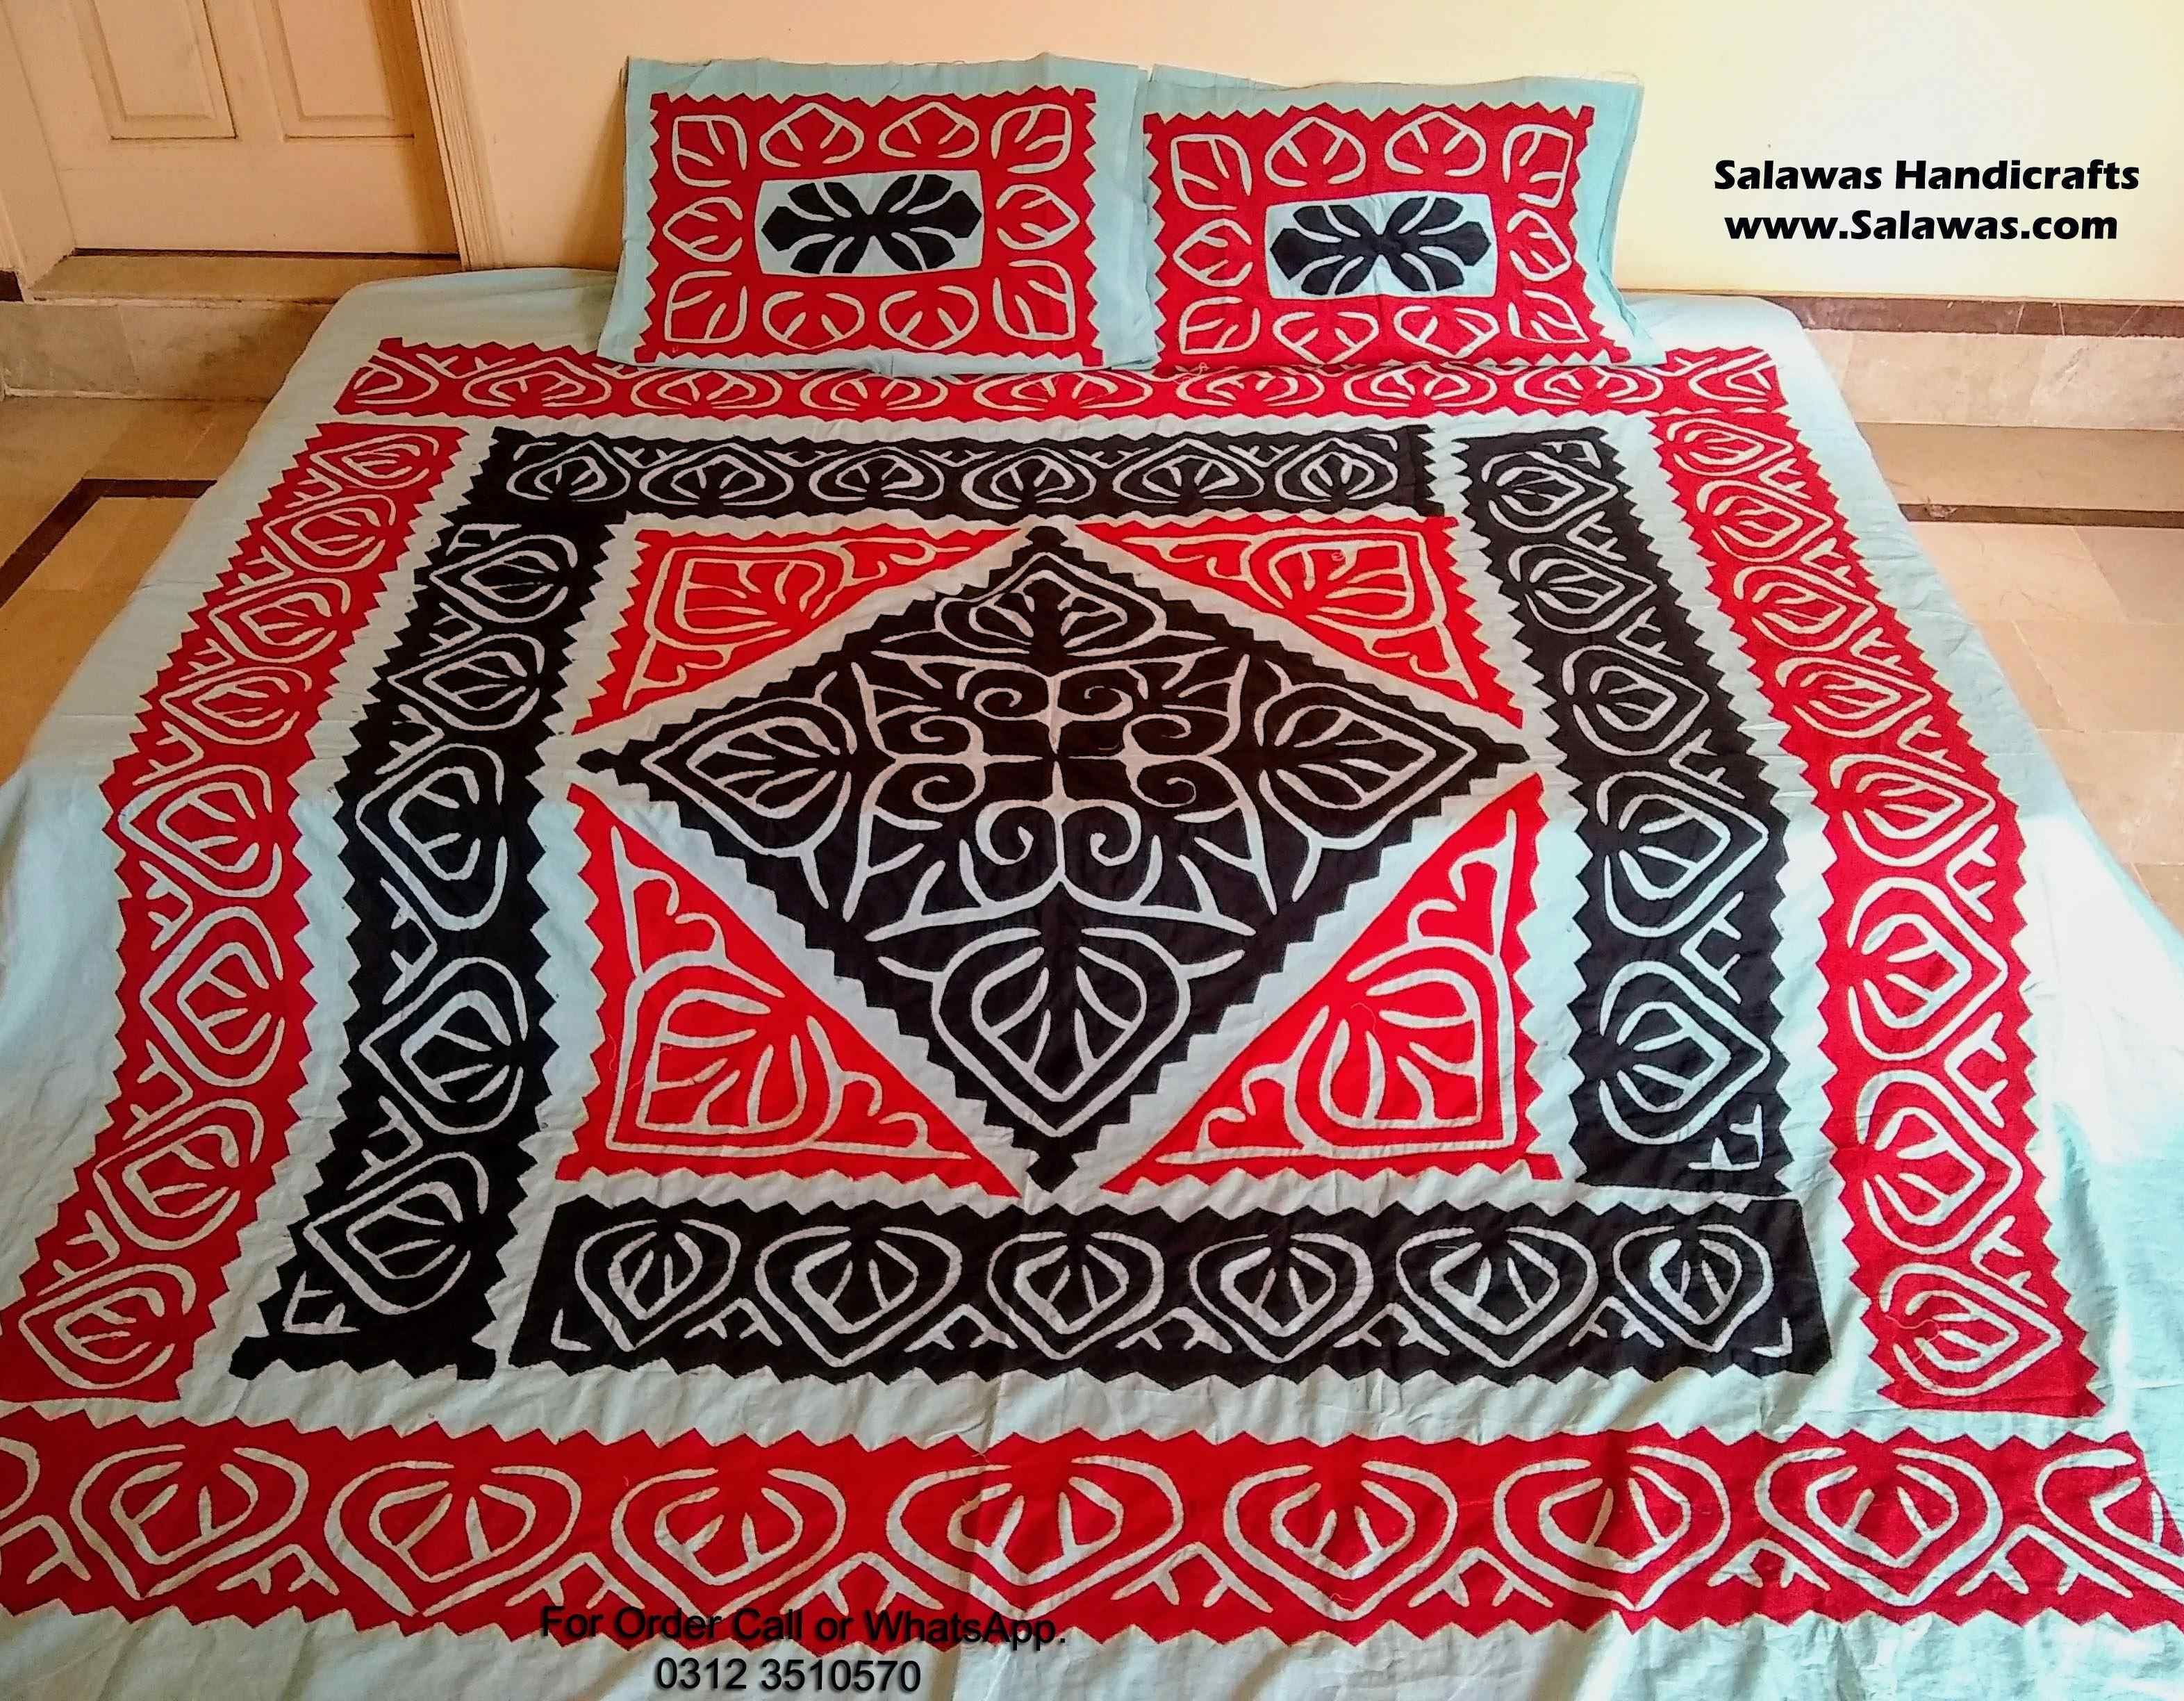 The Best New Sindhi Ralli Designs Bed Sheet Available At Wholesale Price This Is The Handmade Aplic Ralli Bed Sheet Also Work Bed Bed Cover Design Bed Sheets